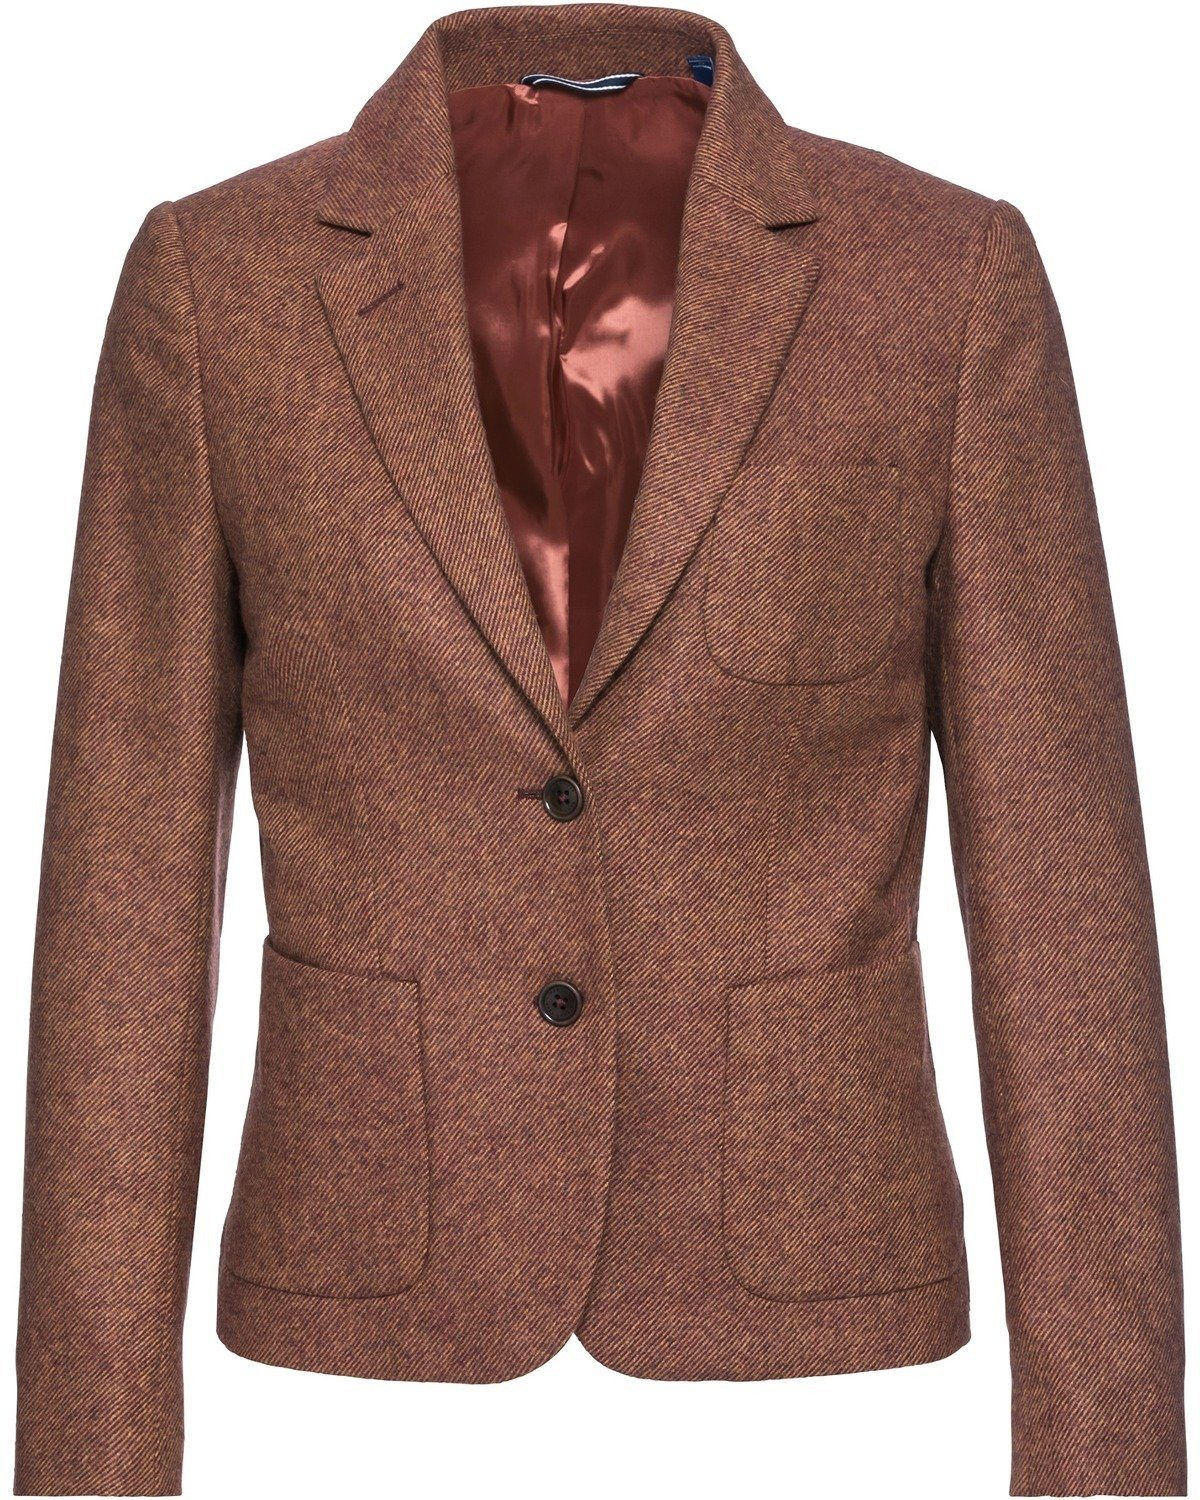 Gant Wollblazer mit Patches